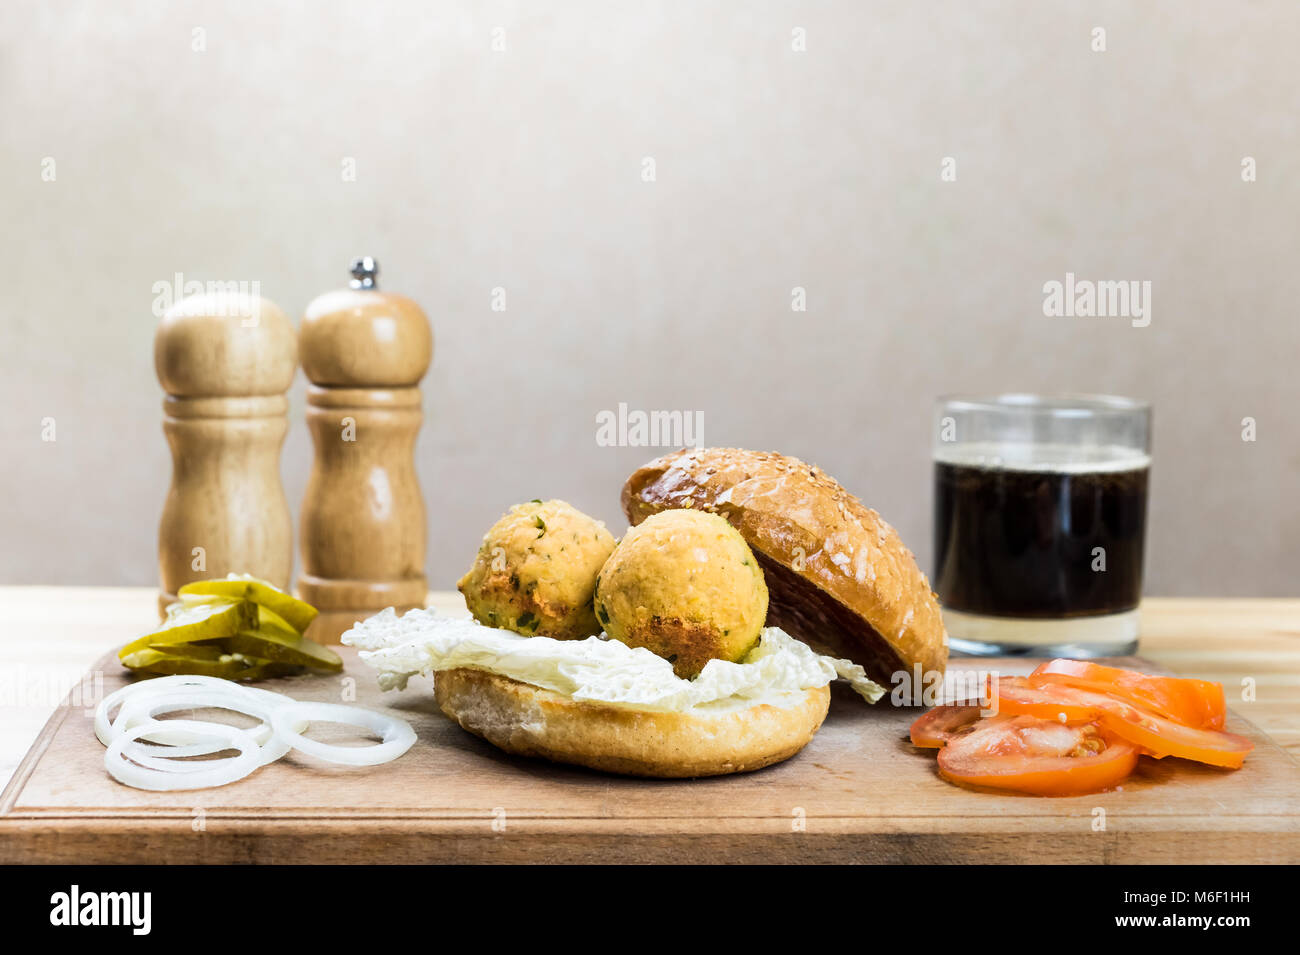 Vegan burger ingredients on wood table - Stock Image